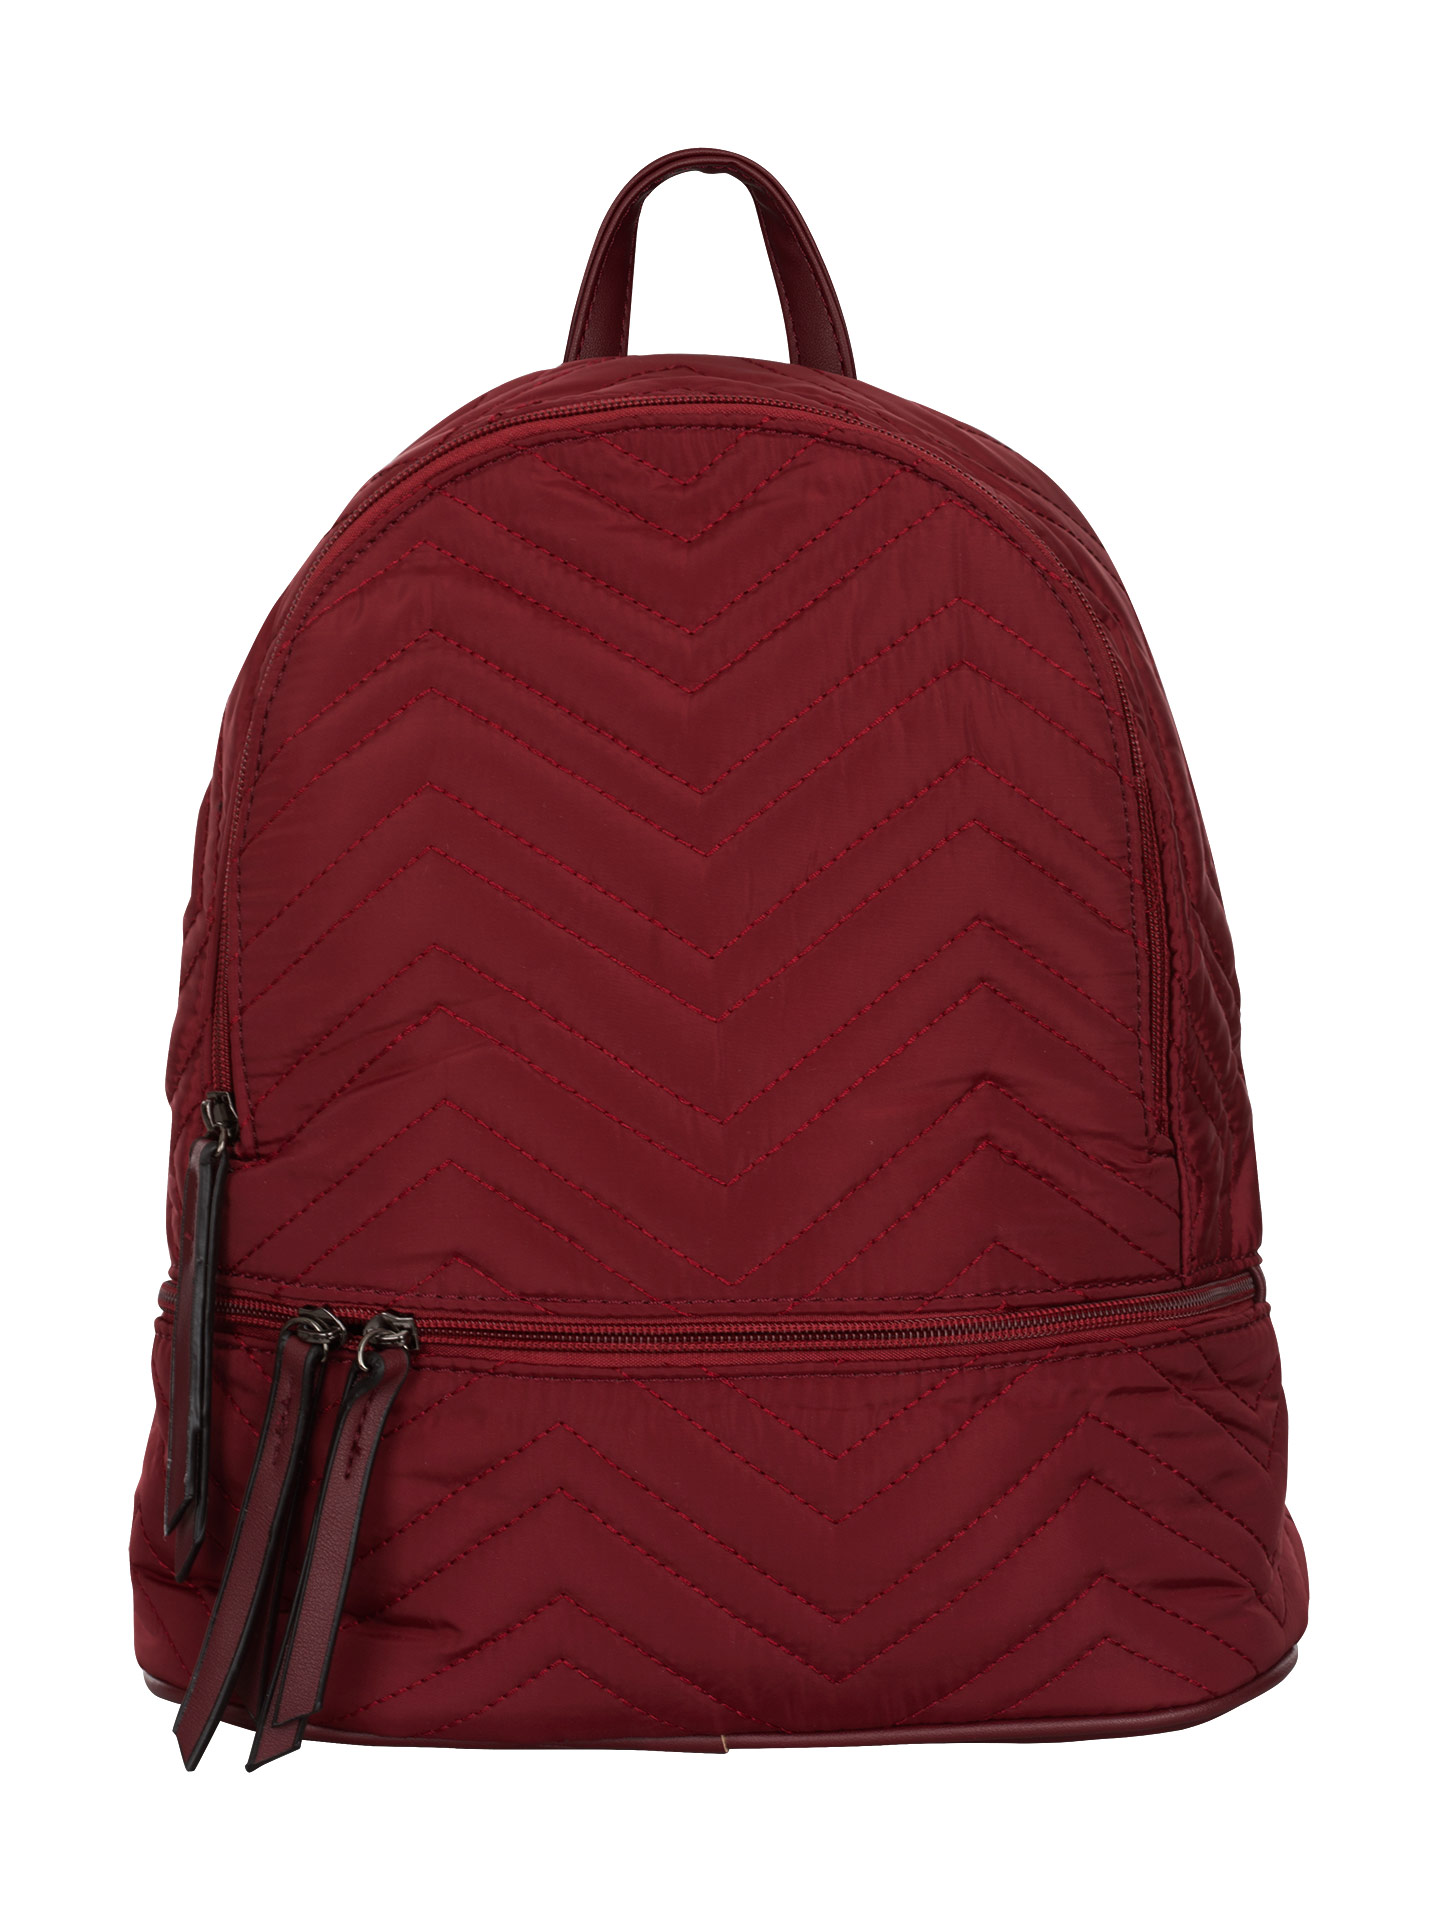 Quilted waterproof backpack in wine red 70600b3bb78a6